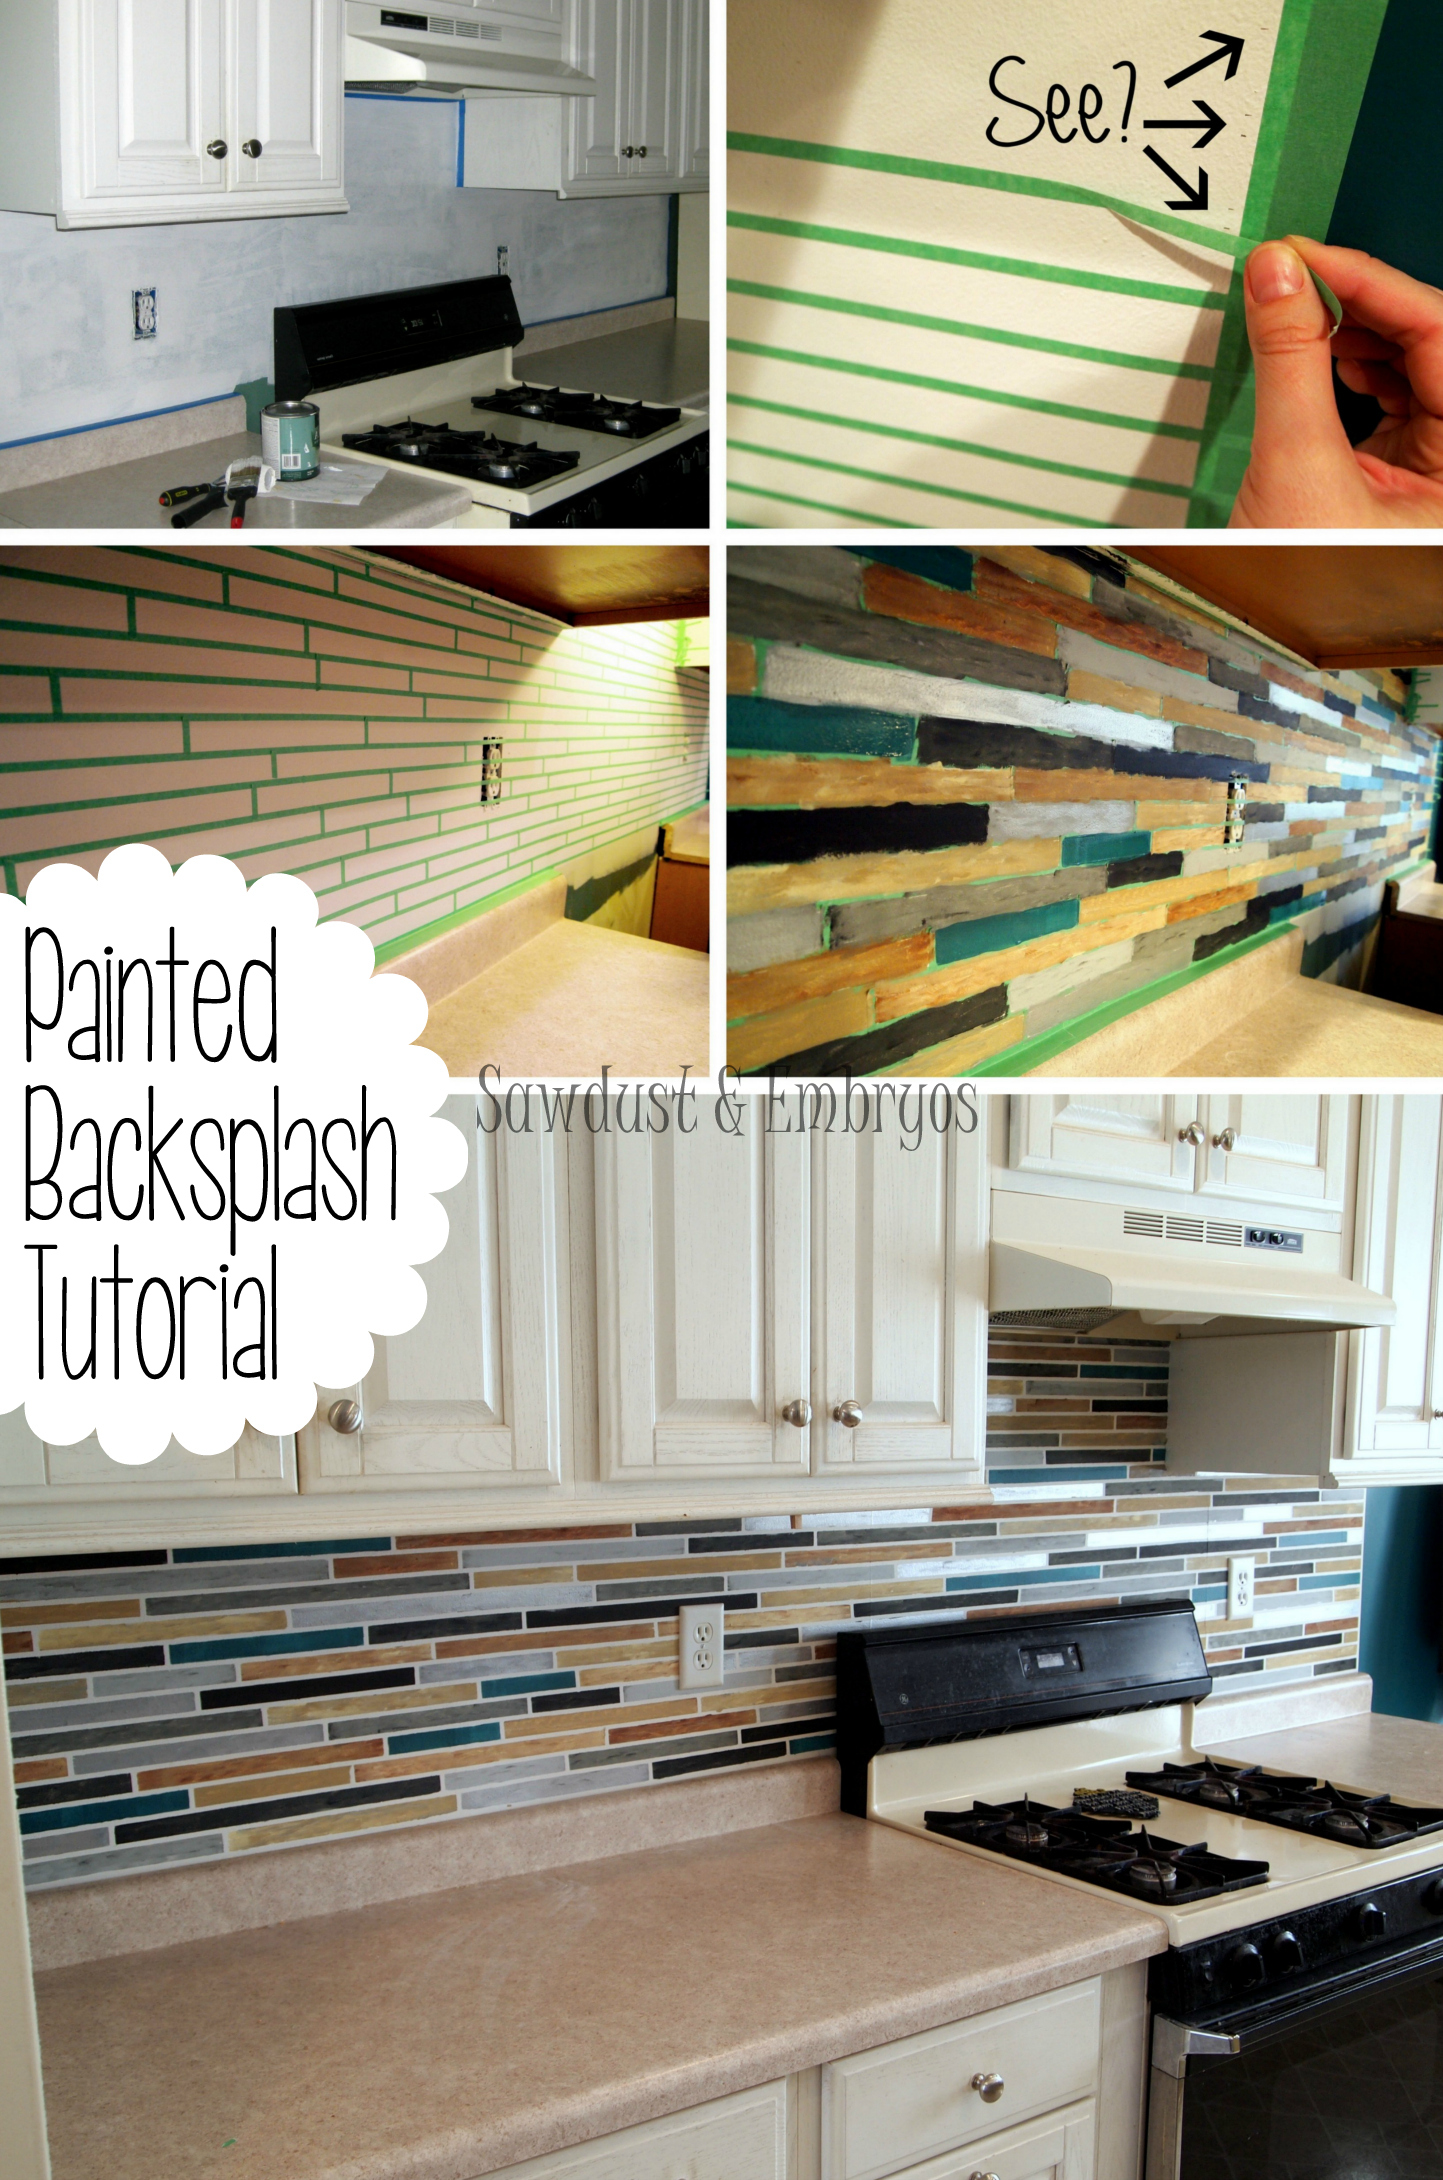 How to Paint a Backsplash to Look Like Tile | Reality Daydream